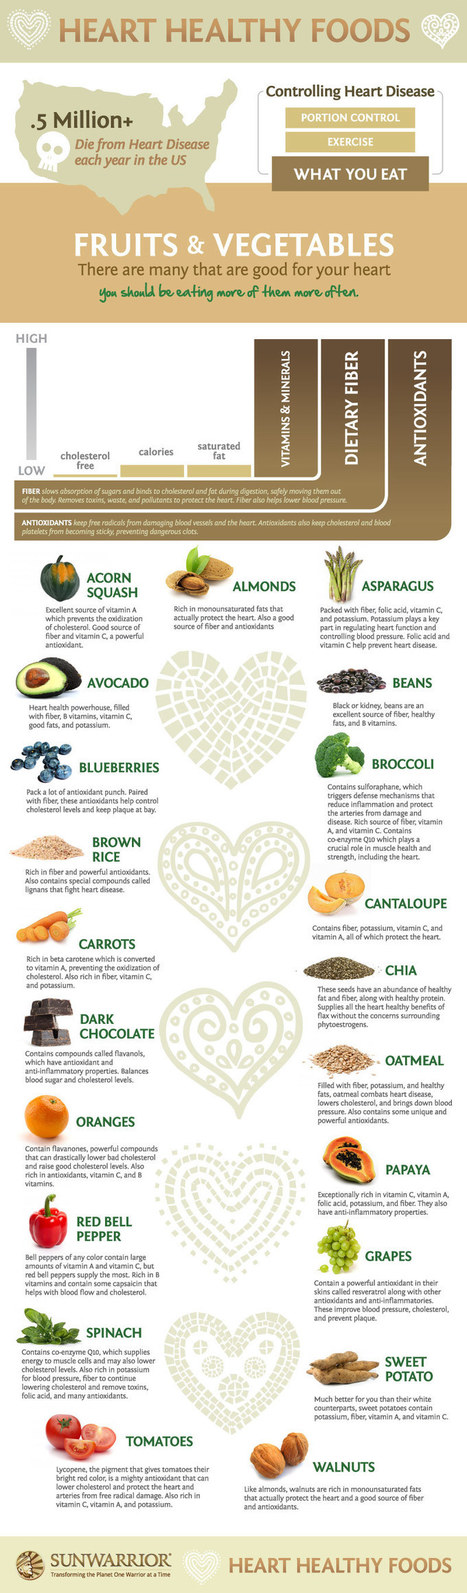 Fight Heart Disease With These Heart Healthy Foods | Healthy creative & trendy Food | Scoop.it